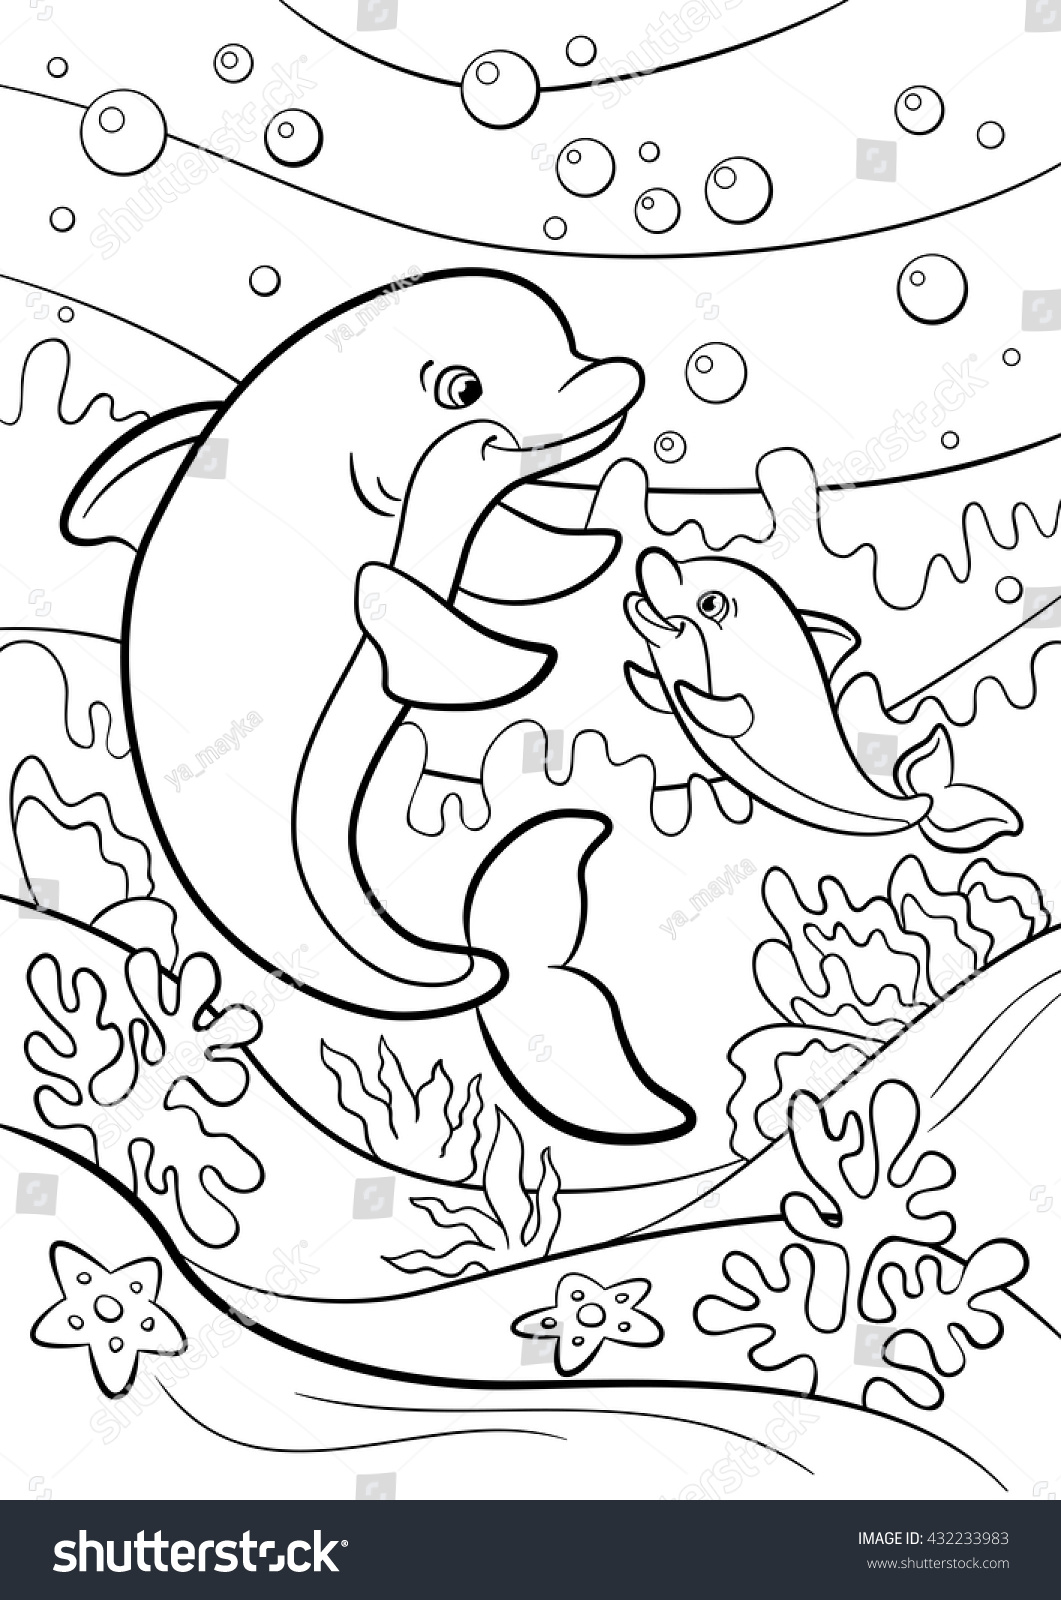 Coloring Pages Marine Wild Animals Mother Dolphin Swims With Her